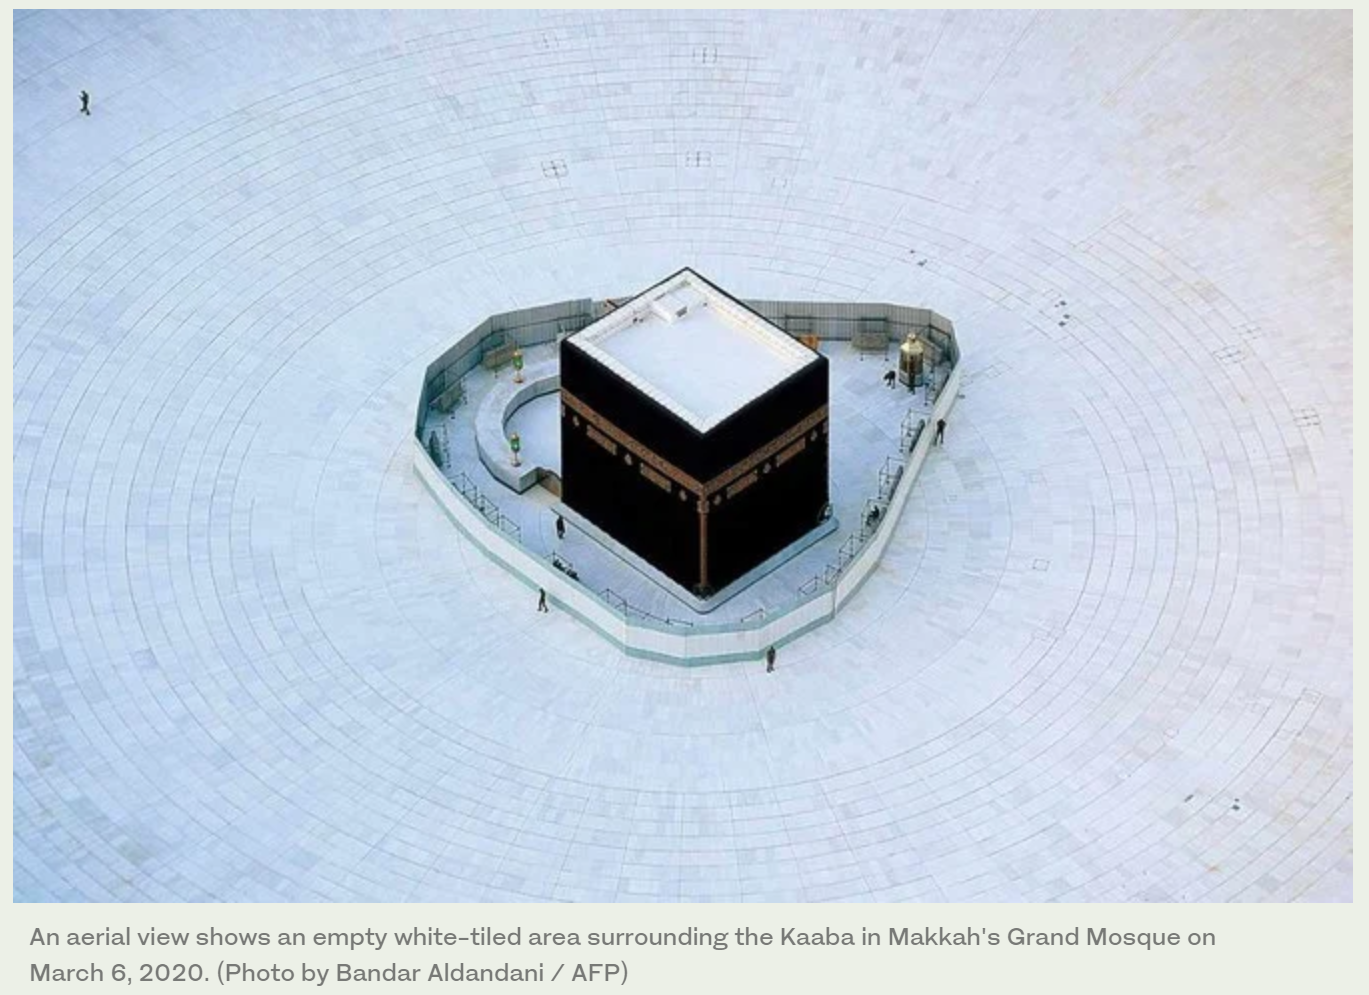 An aerial view shows an empty white-tiled area surrounding the Kaaba in Makkah's Grand Mosque on March 6, 2020.